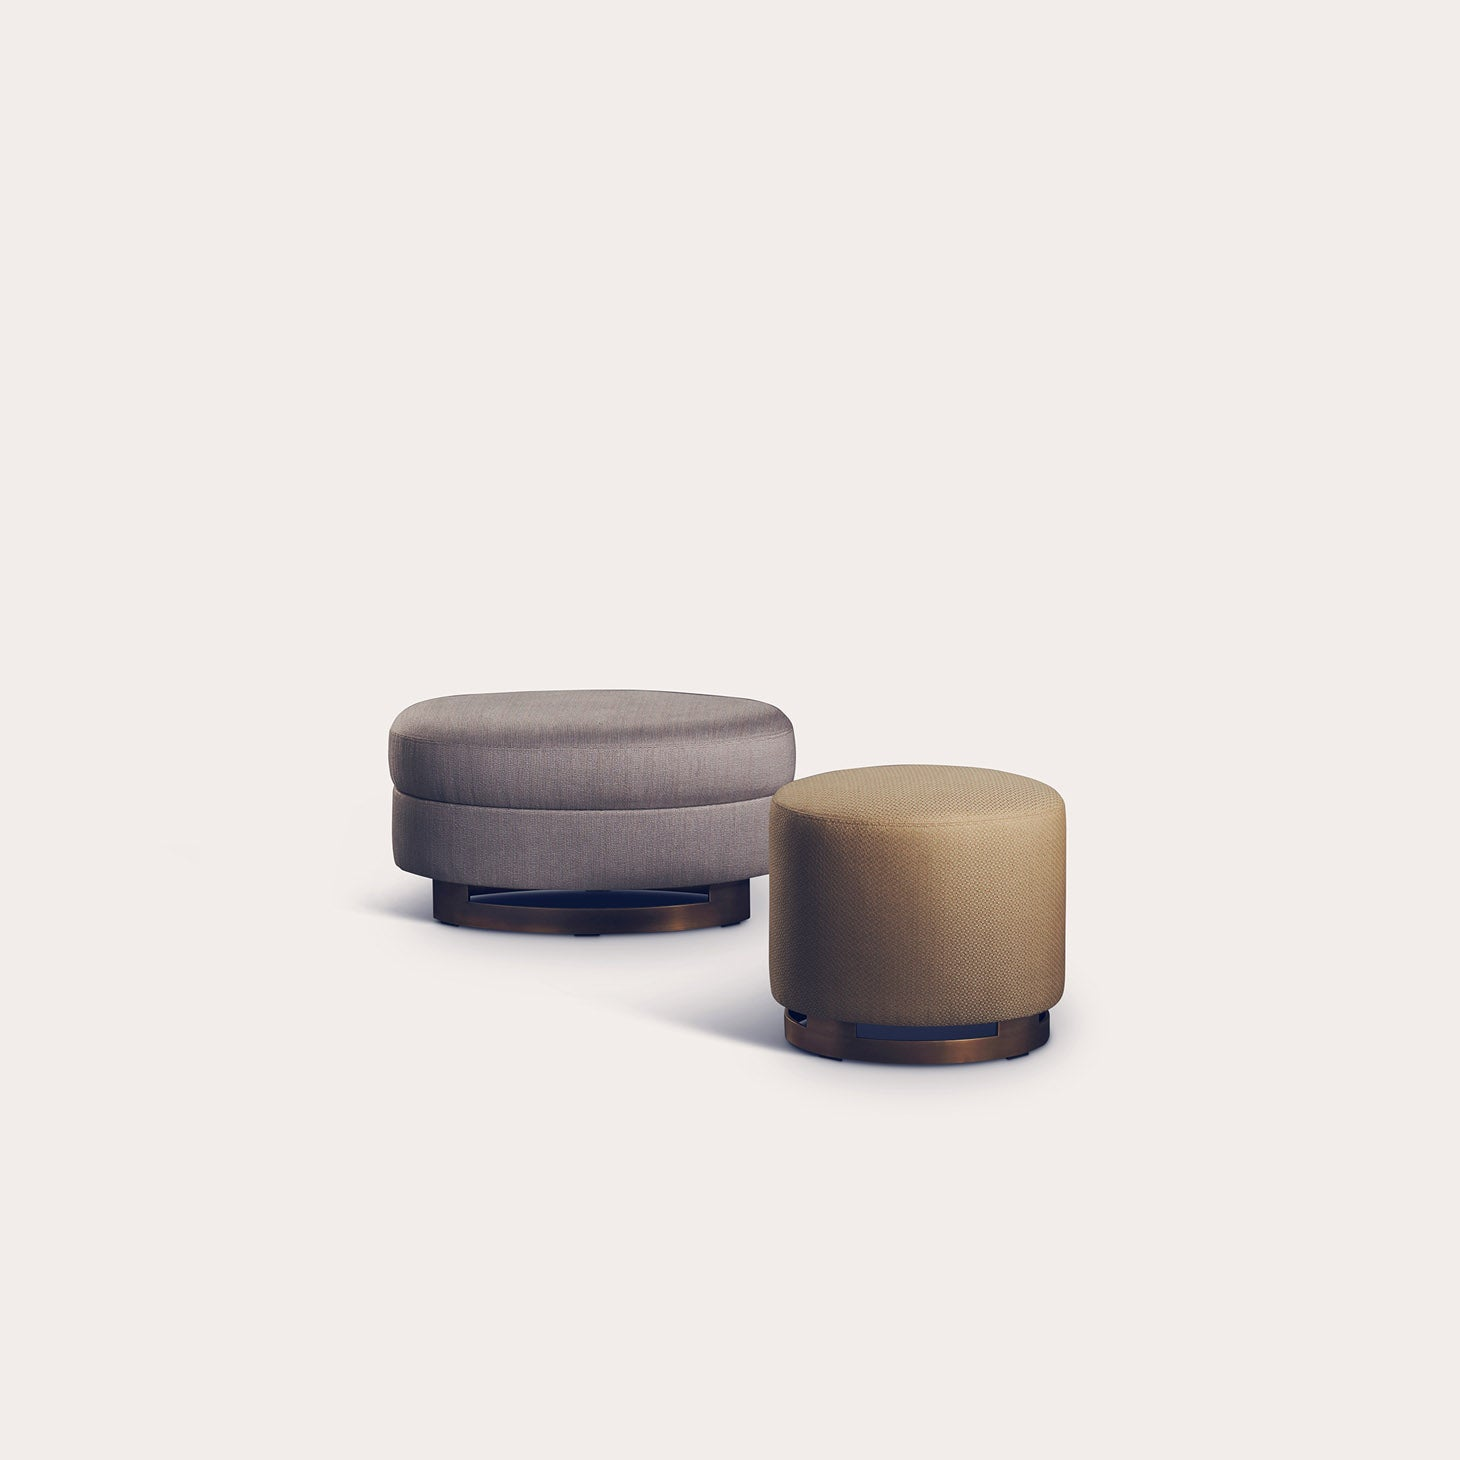 GUMI Stool Seating Bruno Moinard Designer Furniture Sku: 773-120-10019